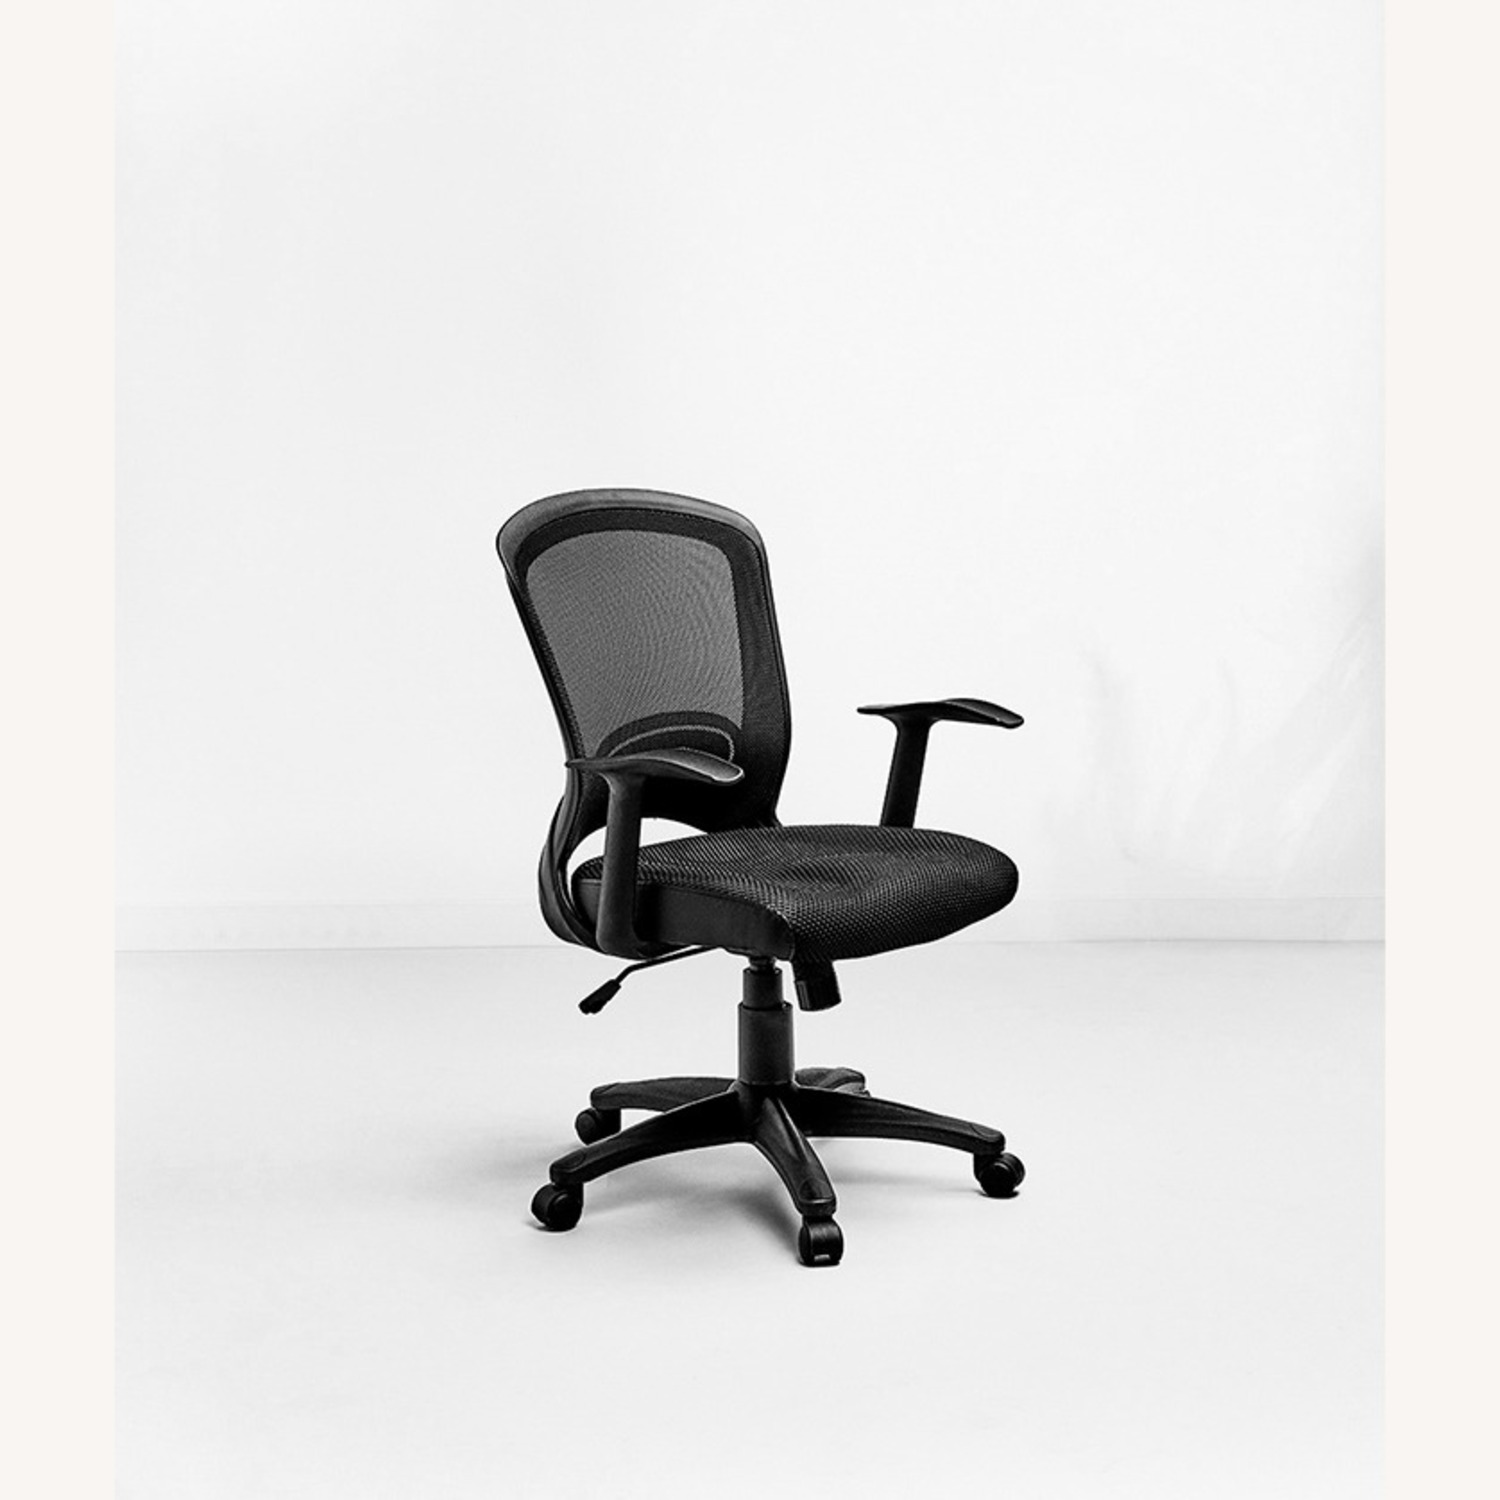 Modway Whistler Desk Chair - image-1